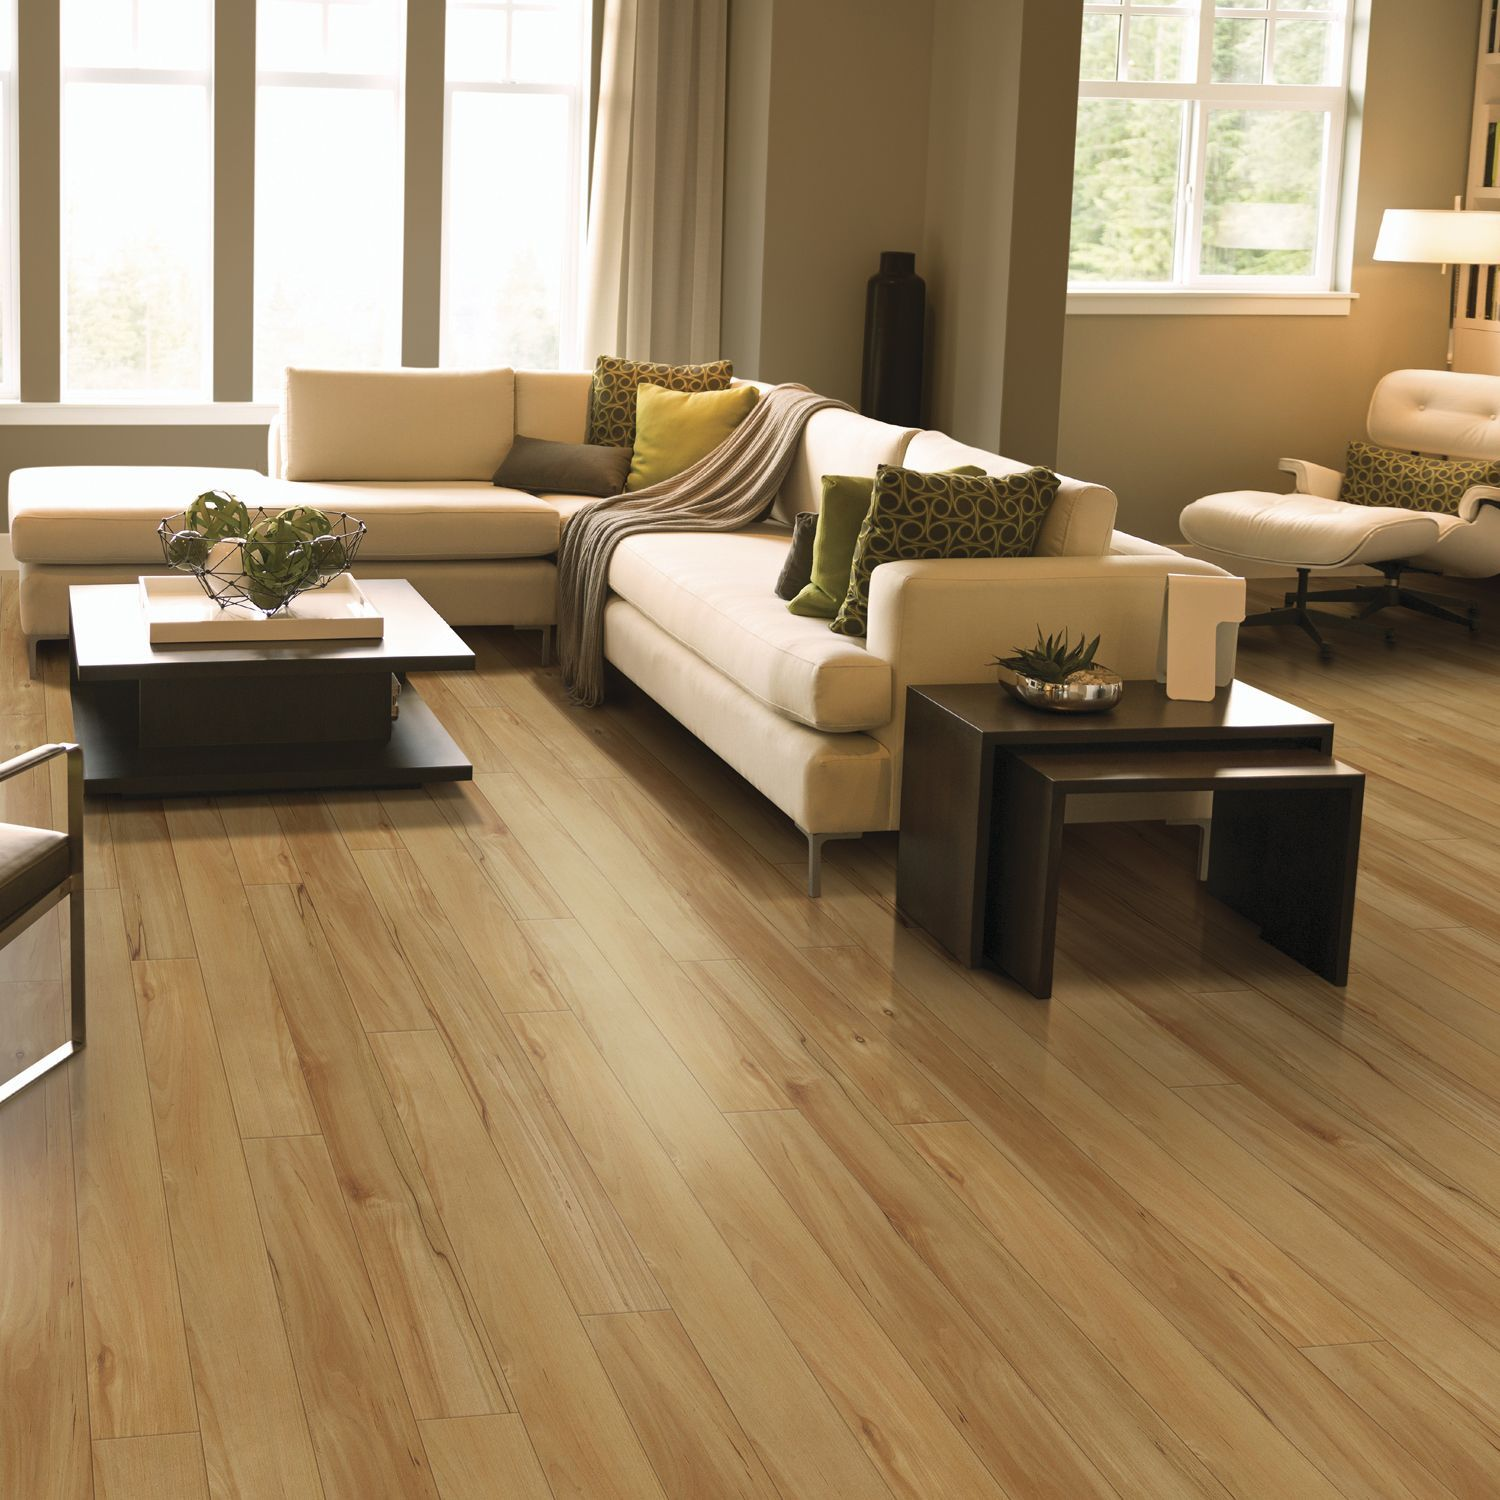 Select Surfaces Country Maple Laminate Flooring Click Laminate Flooring Maple Laminate Flooring Laminate Flooring